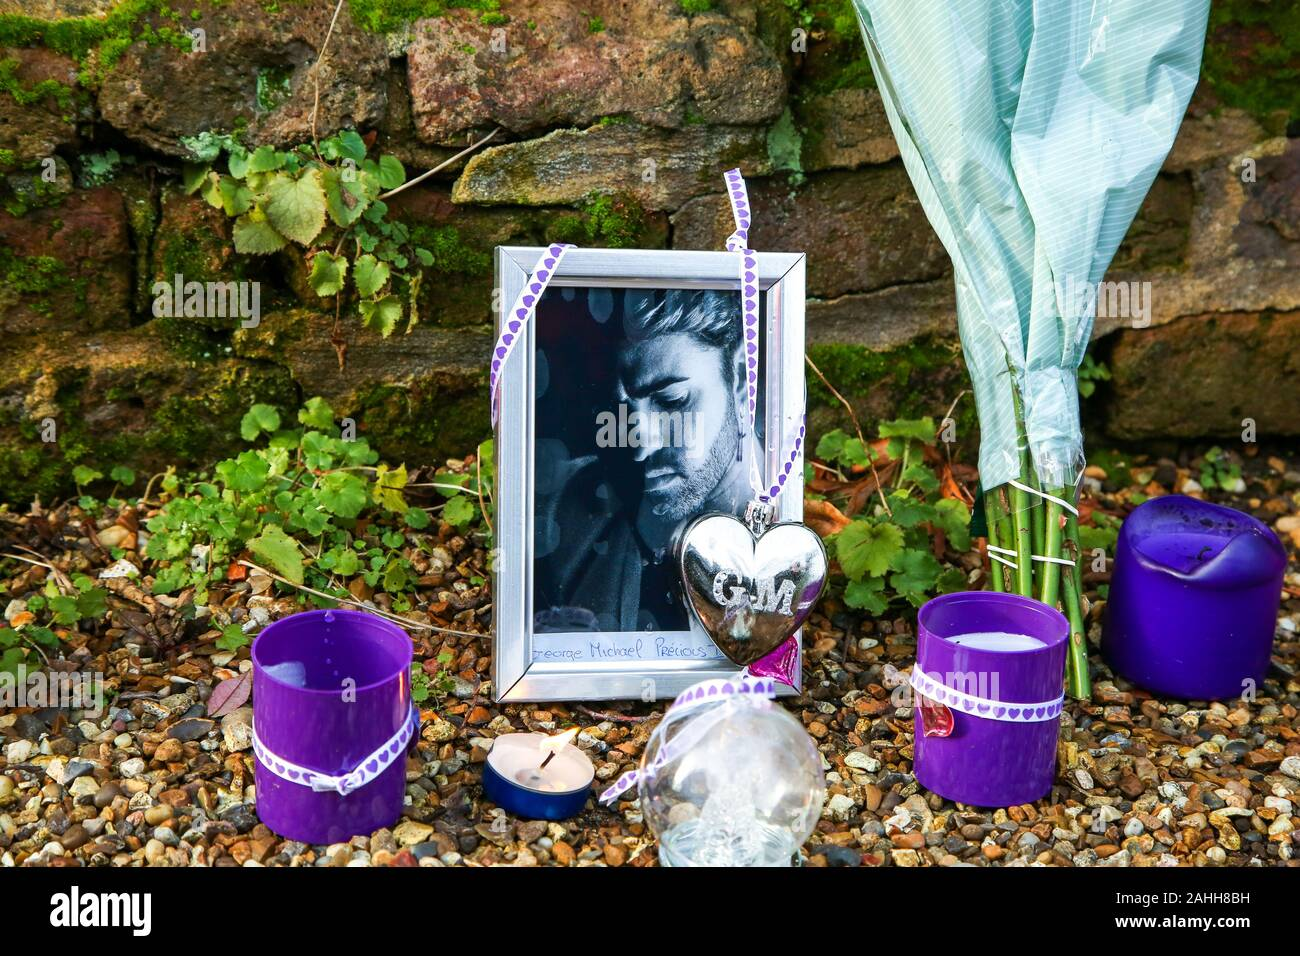 George Michaels Home In Highgate, North London Christmas 2020 Tributes outside George Michael's former house in Highgate, north